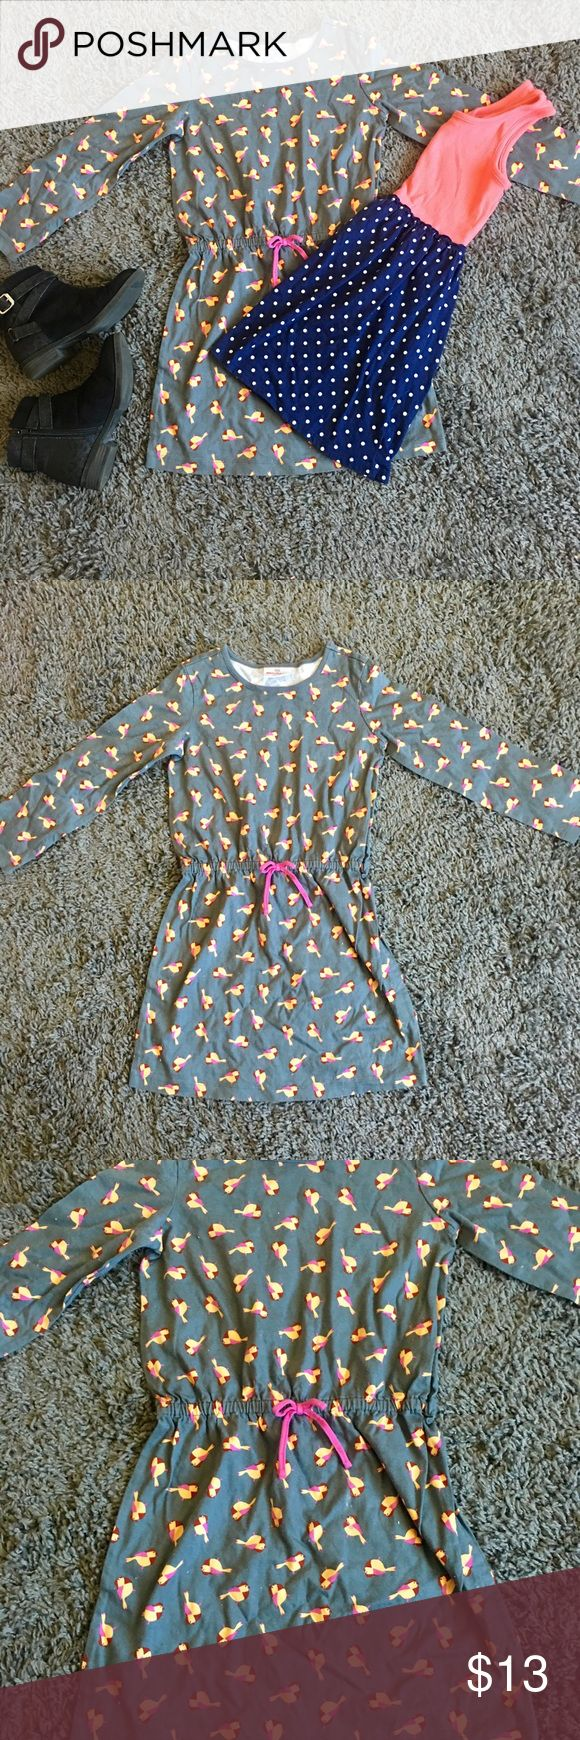 Girls 2pc Dress Bundle Size 6 👗 Hanna Andersson Girls 2pc Bundle Hanna Andersson 120 Faded Glory Size 6/6x gently Cared for, smoke free home 🏡  Ready to be shipped to new home. Fast Shipping Hanna Andersson/Faded Glory Dresses Casual